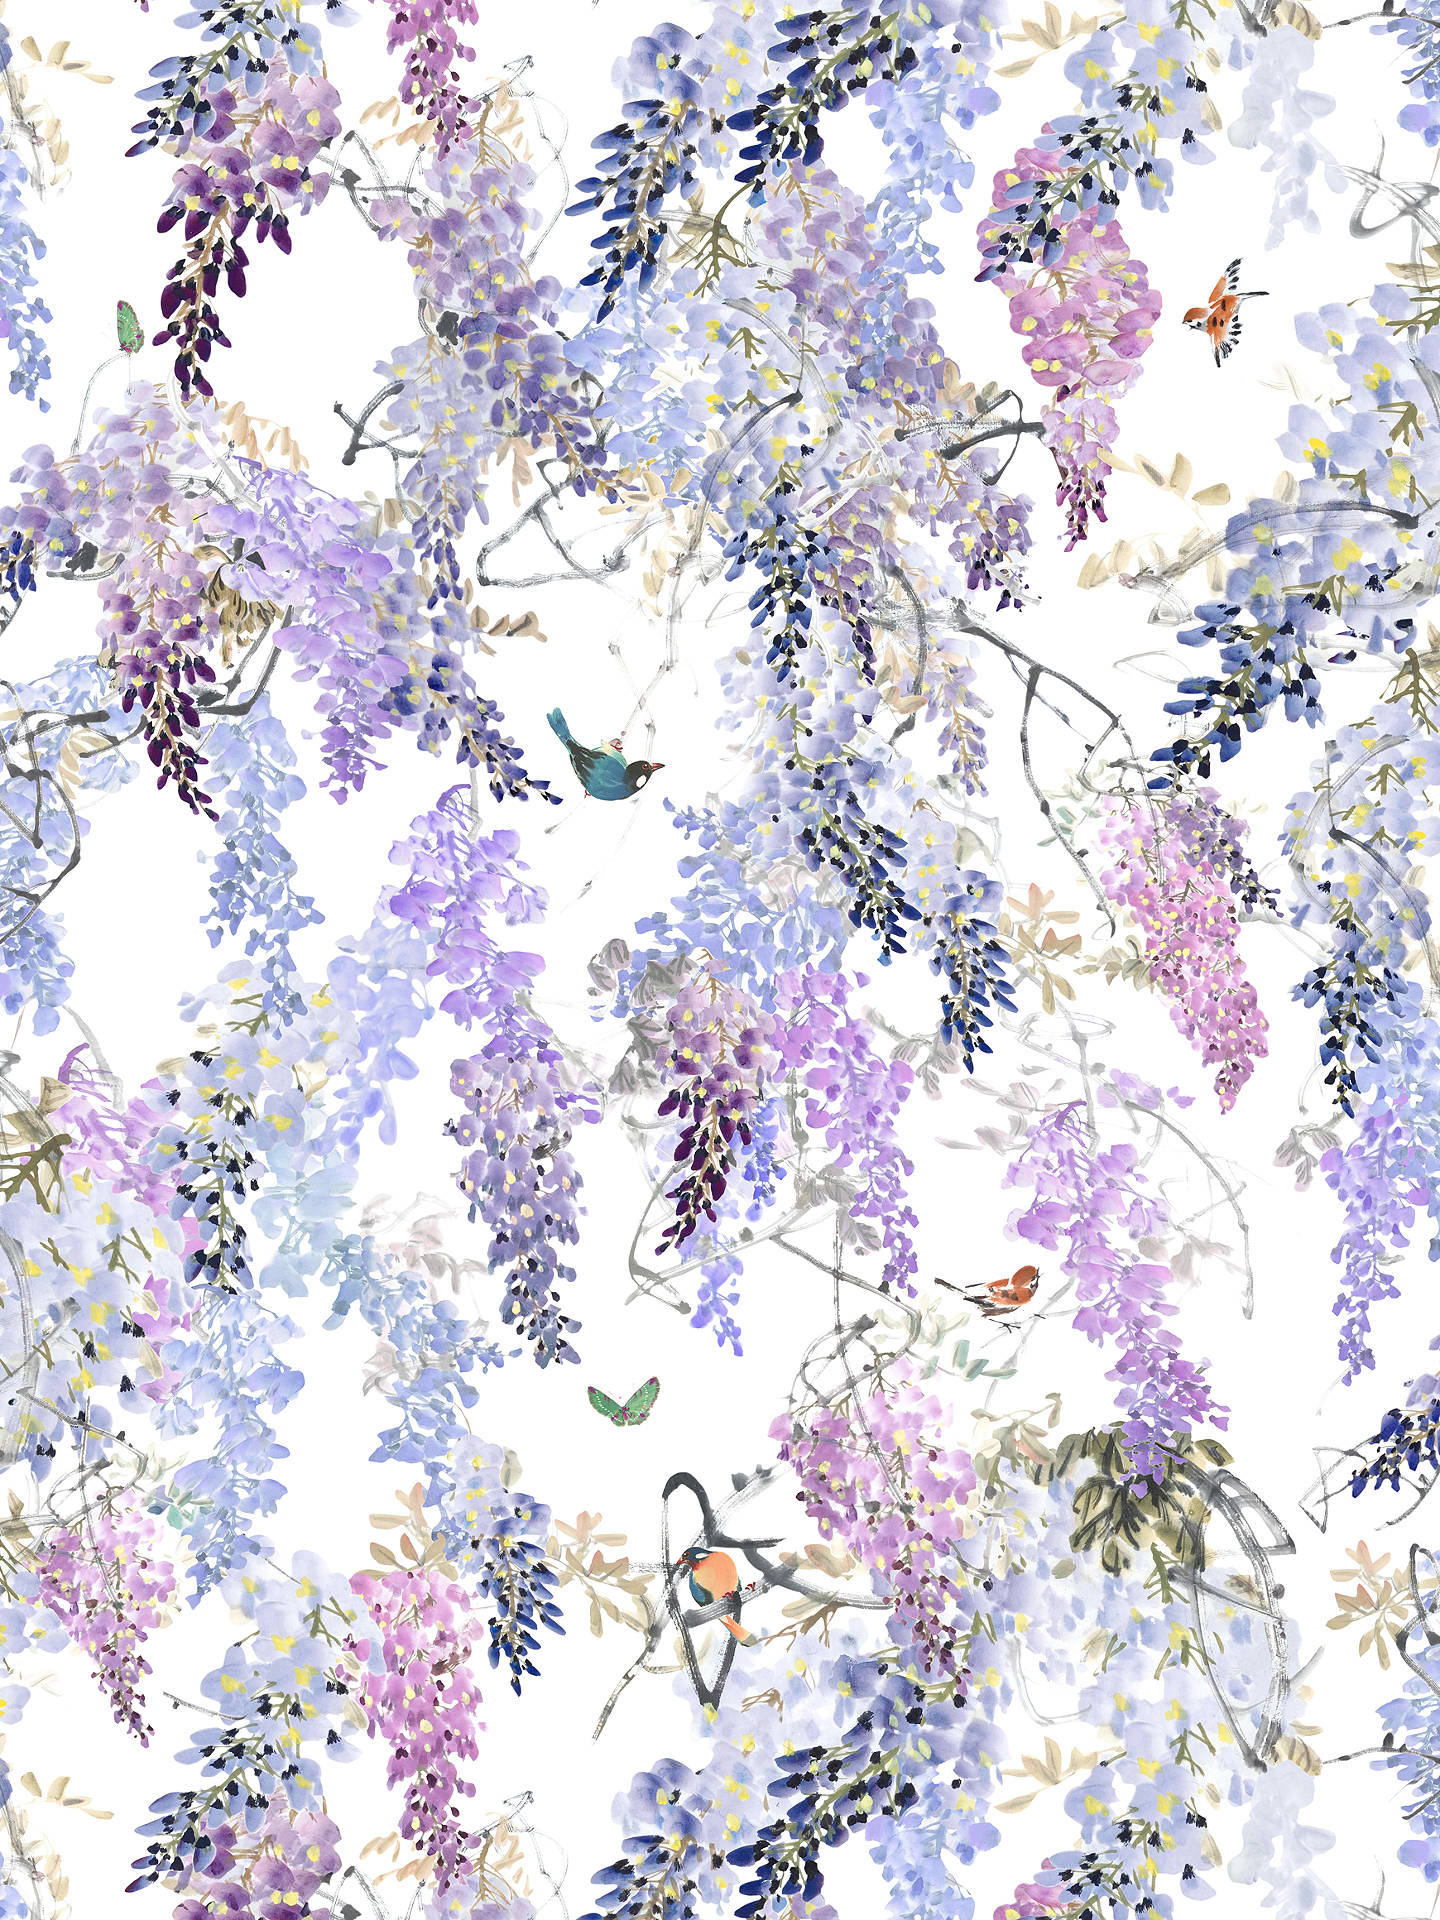 BuySanderson Waterperry Wisteria Falls Wallpaper Lilac 216297, Panel B Online at johnlewis.com